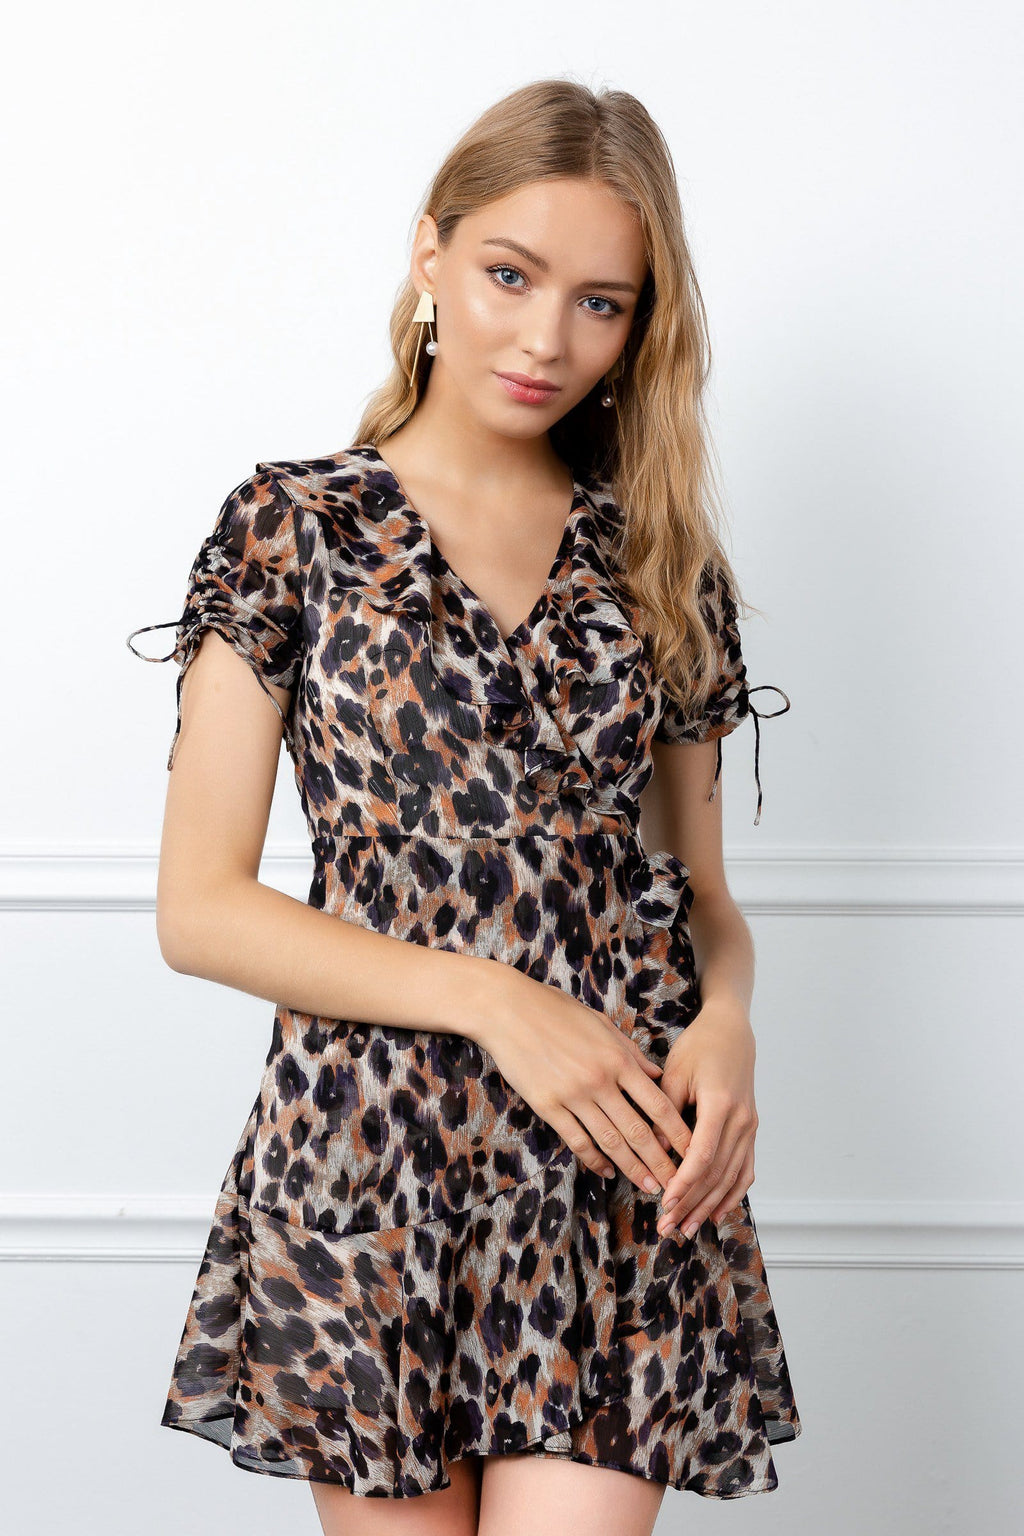 Leopard Printed Dress by J.ING womens fashion